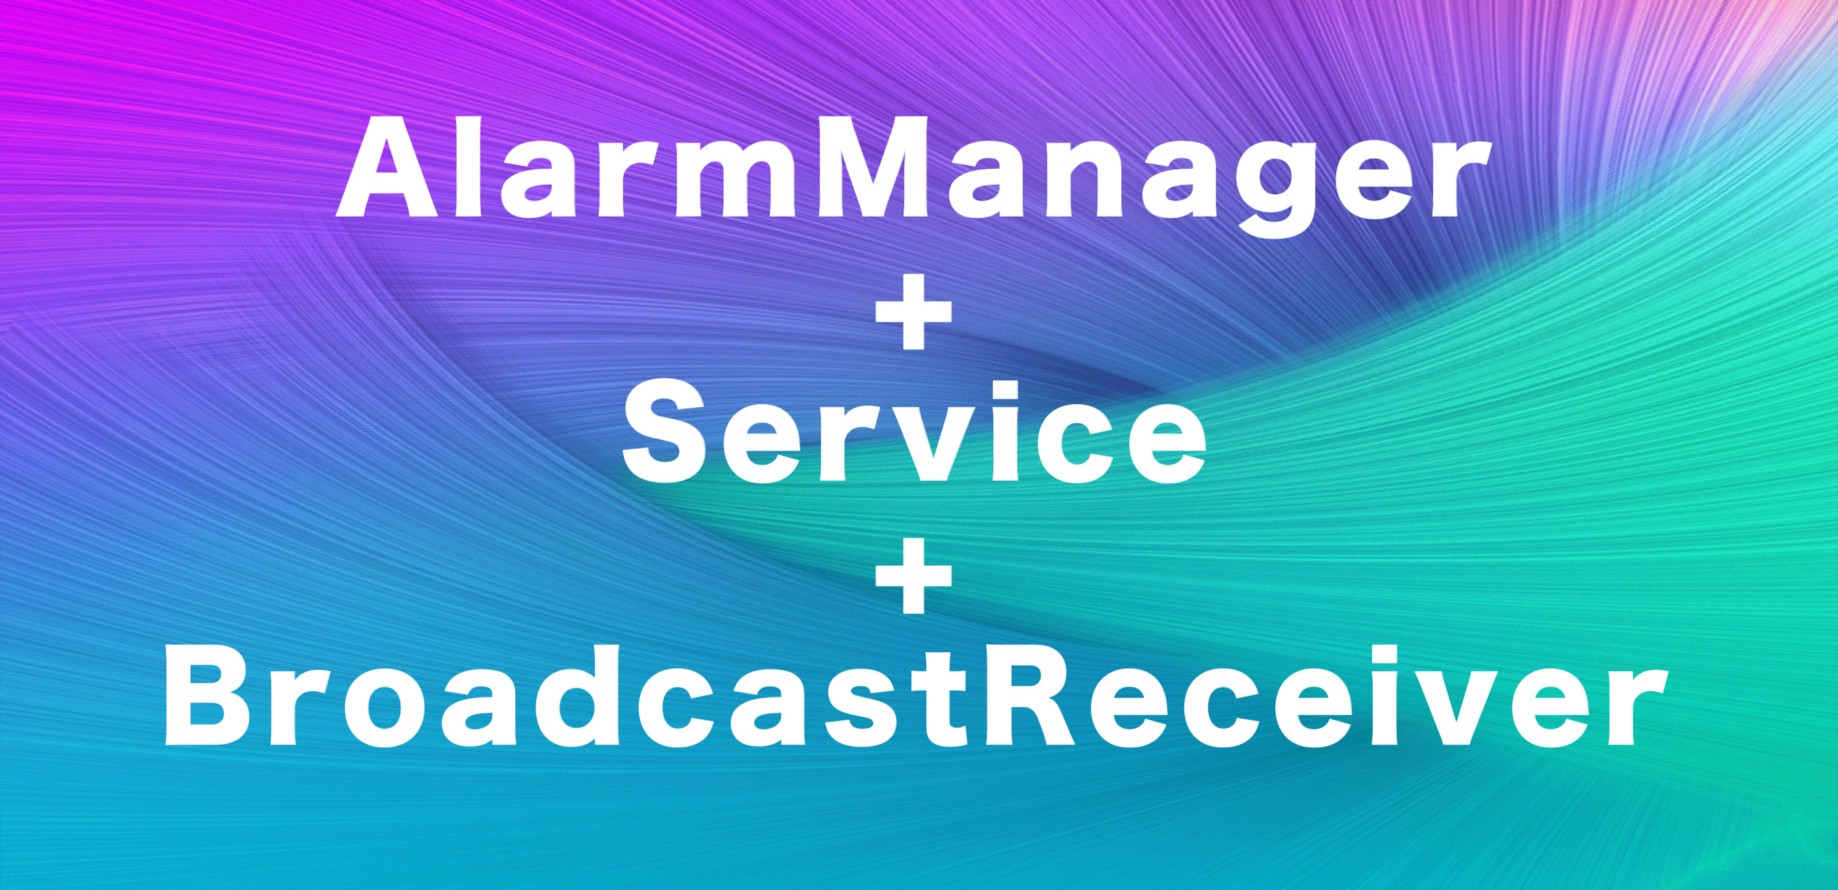 Classic chain AlarmManager — Service — BroadcastReceiver with new